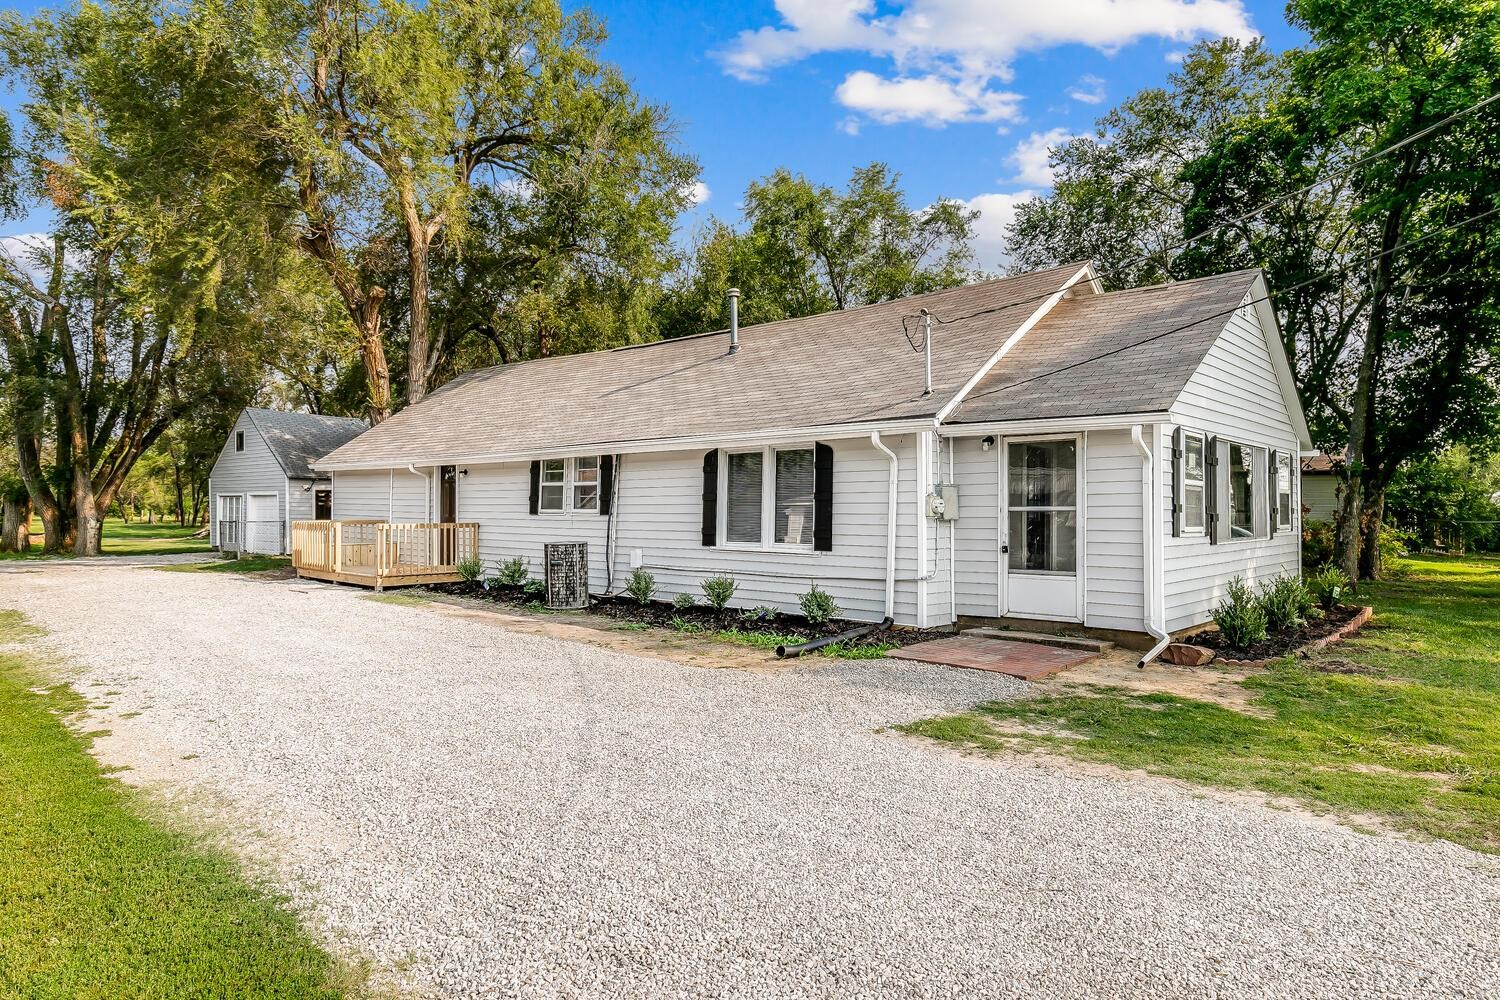 Spread out on a lot that's over an acre, this newly-remodeled ranch home in Valley Center is brimmin